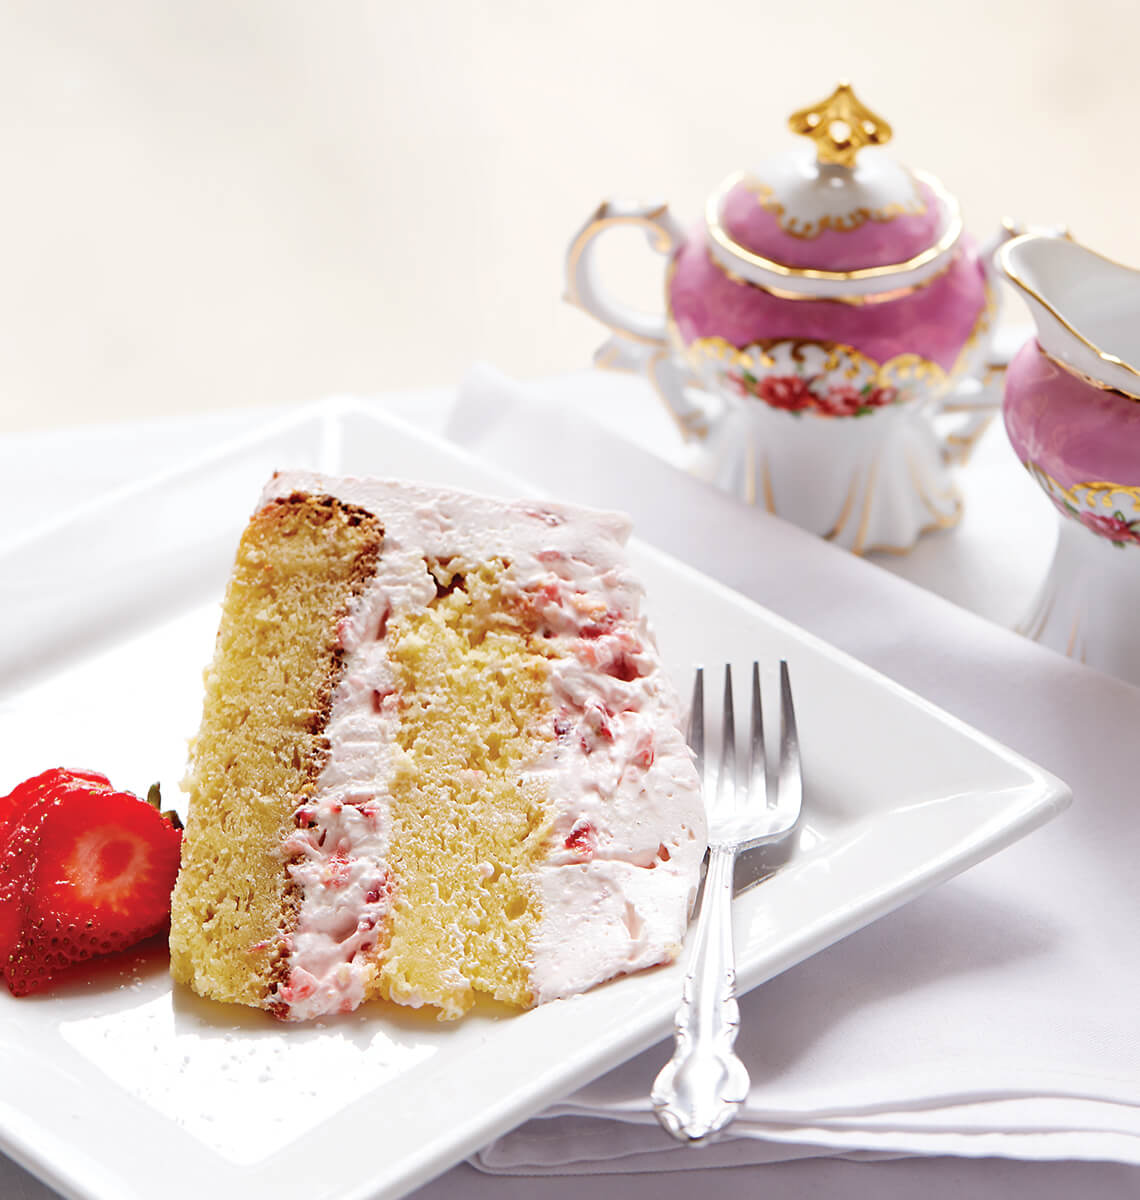 A piece of cake on a plate with tea pitcher.